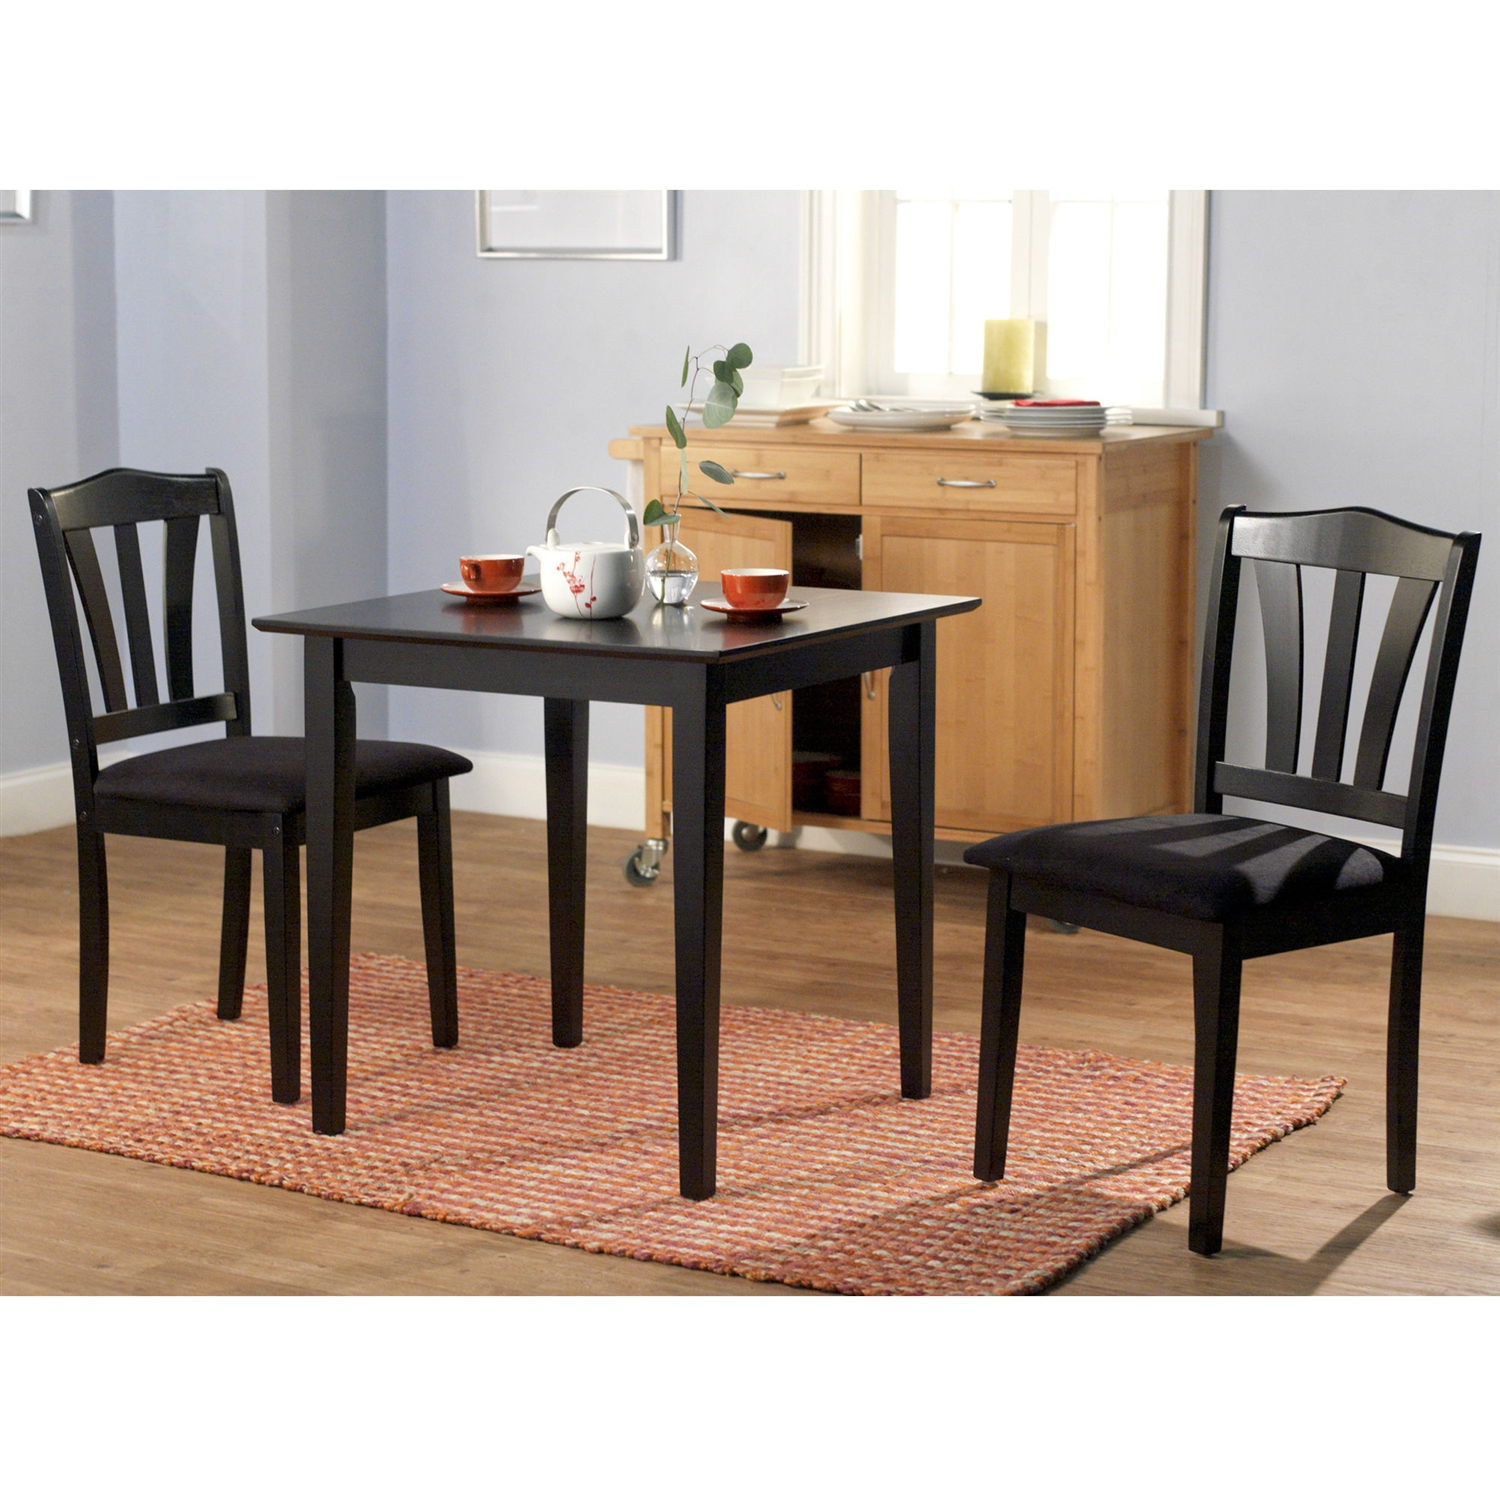 Small Wooden Kitchen Table And Chairs 3 Piece Set: 3-Piece Wood Dining Set With Square Table And 2 Chairs In